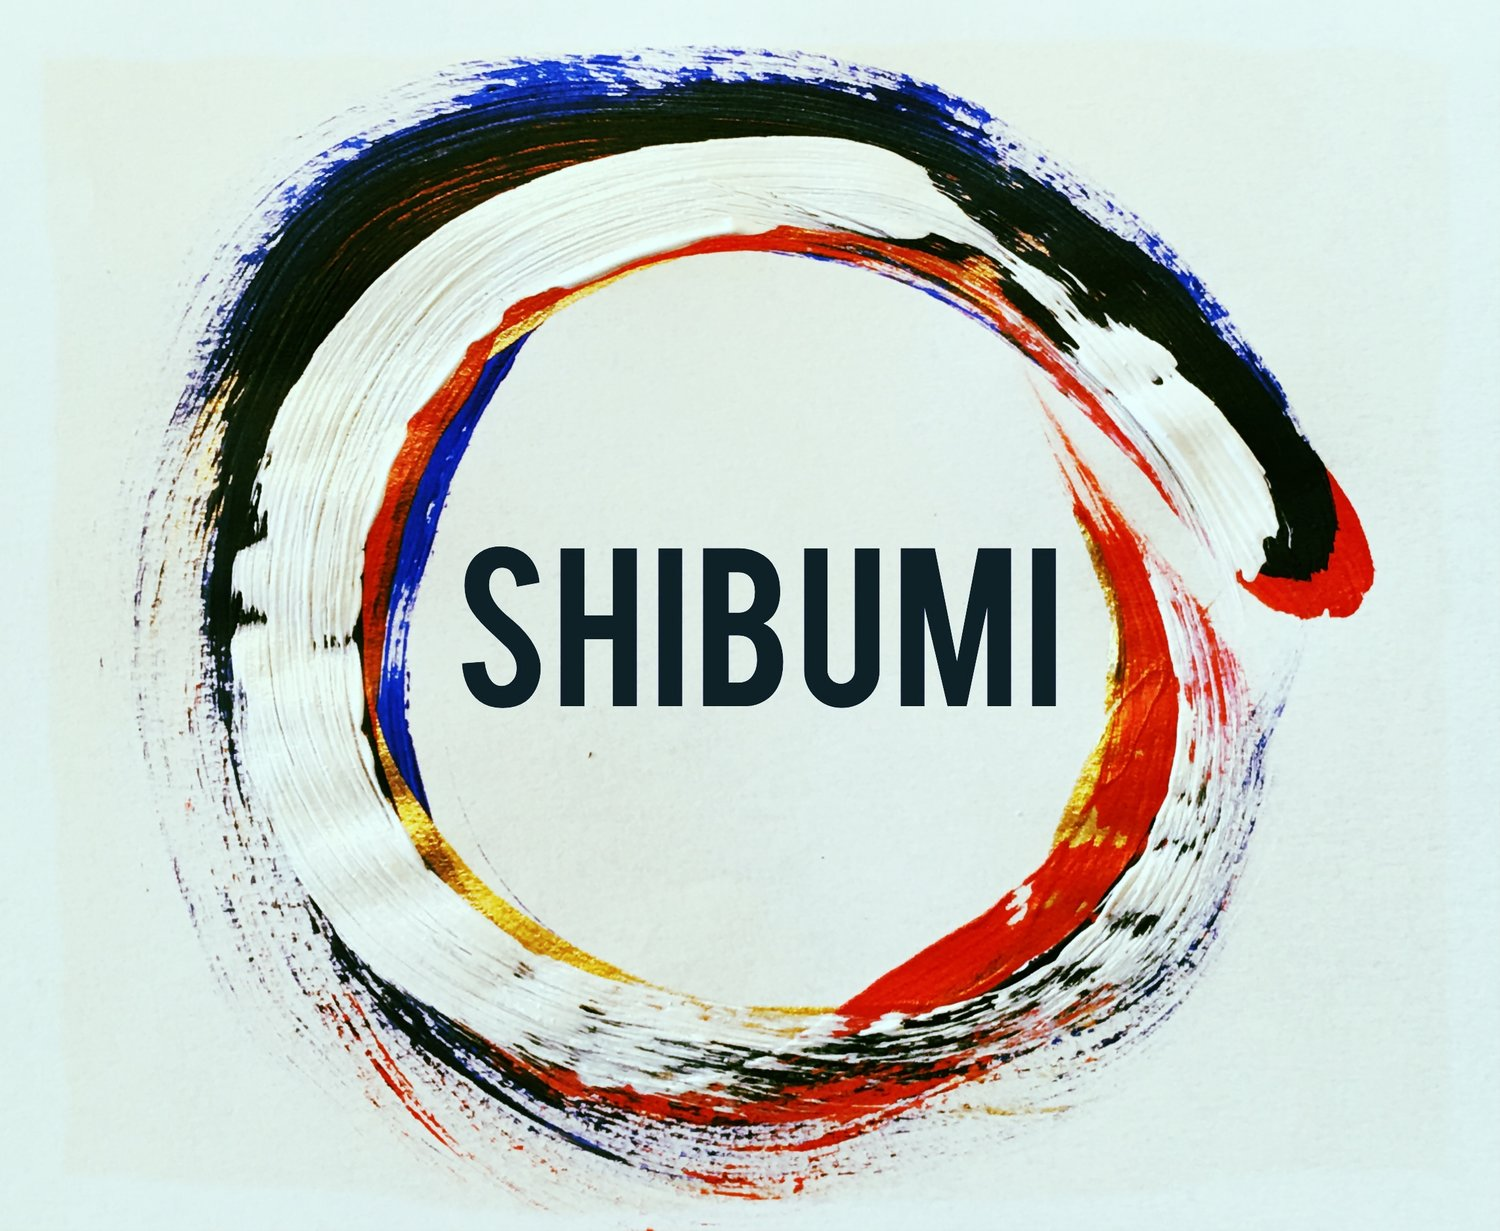 Shibumi Crypto Capital Digital Asset Fund, LP